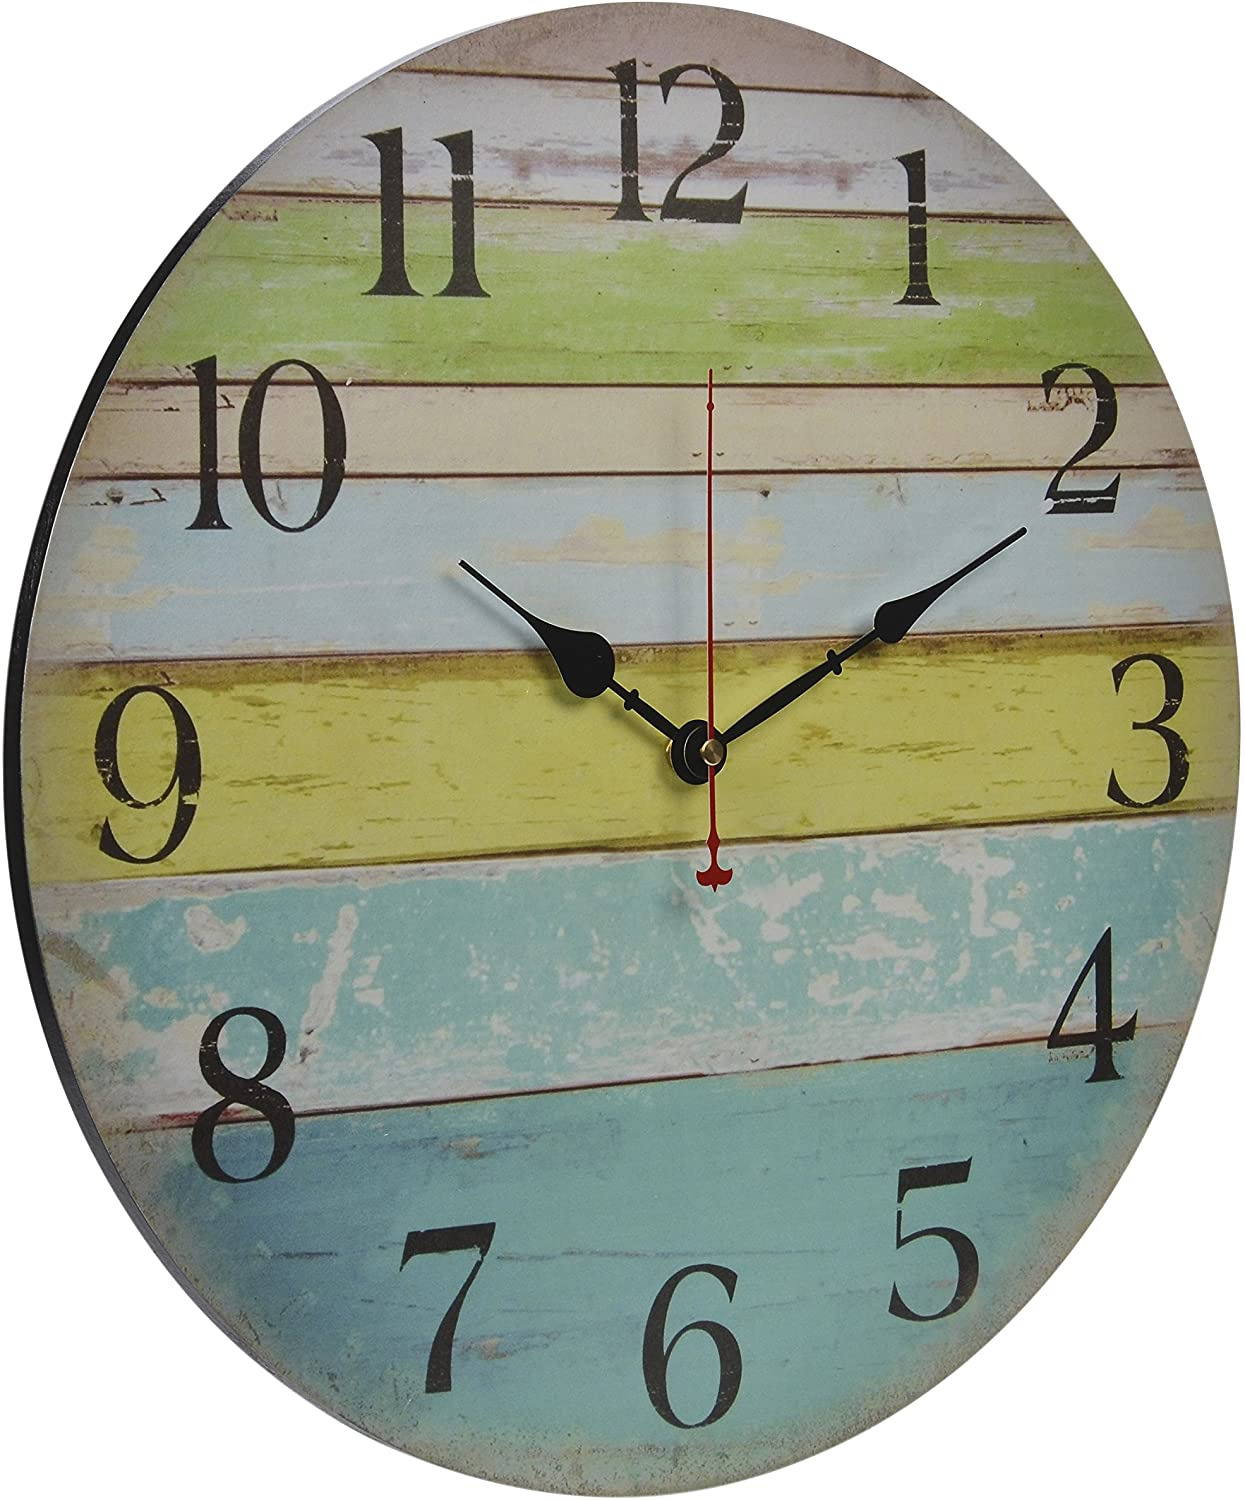 Decorative Bathroom Wall Clocks Lovely Old Oak 16 Inch Beach Wall Clock Decorative Silent Non Ticking Nautical theme for Bathroom Living Room Kitchen Bedroom Decor with Colorful Blue